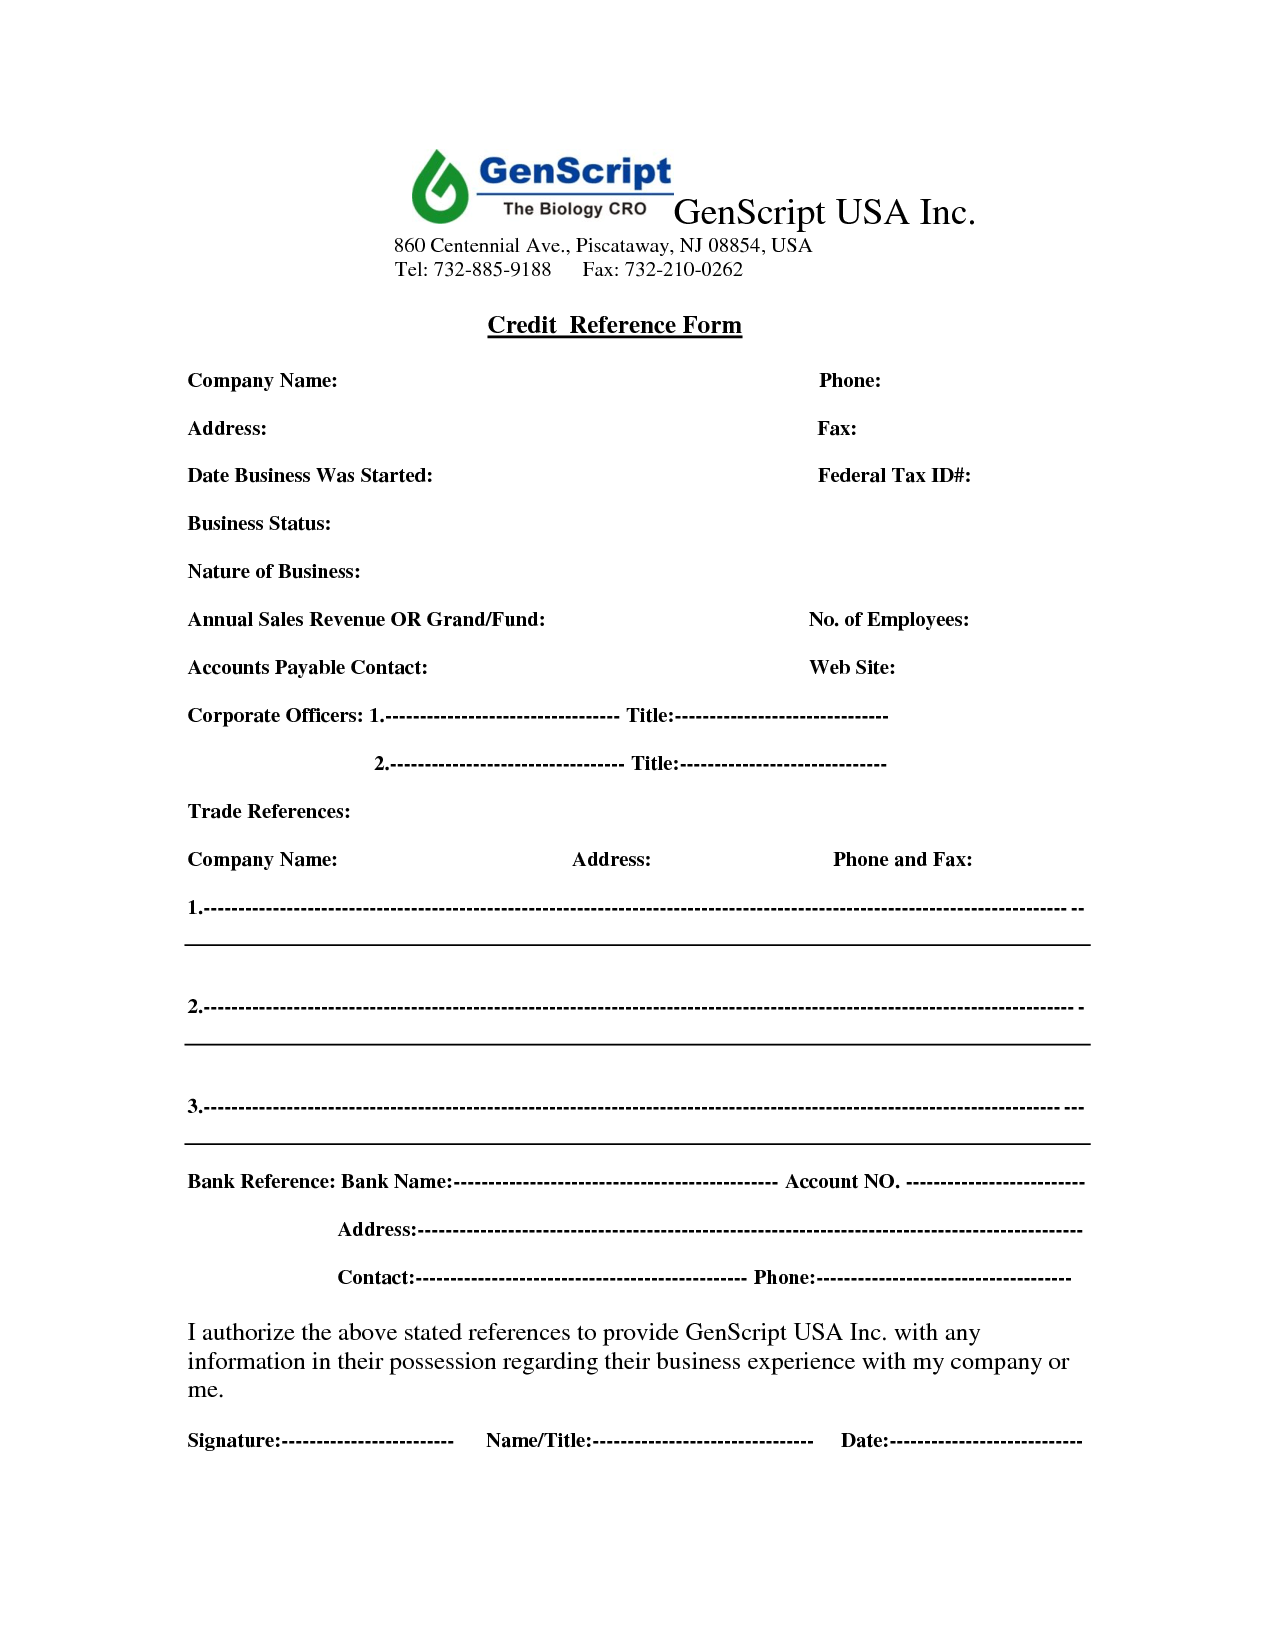 Bill Of Sale Template for Business and Credit Report Pany Credit Report Usa Business Credit